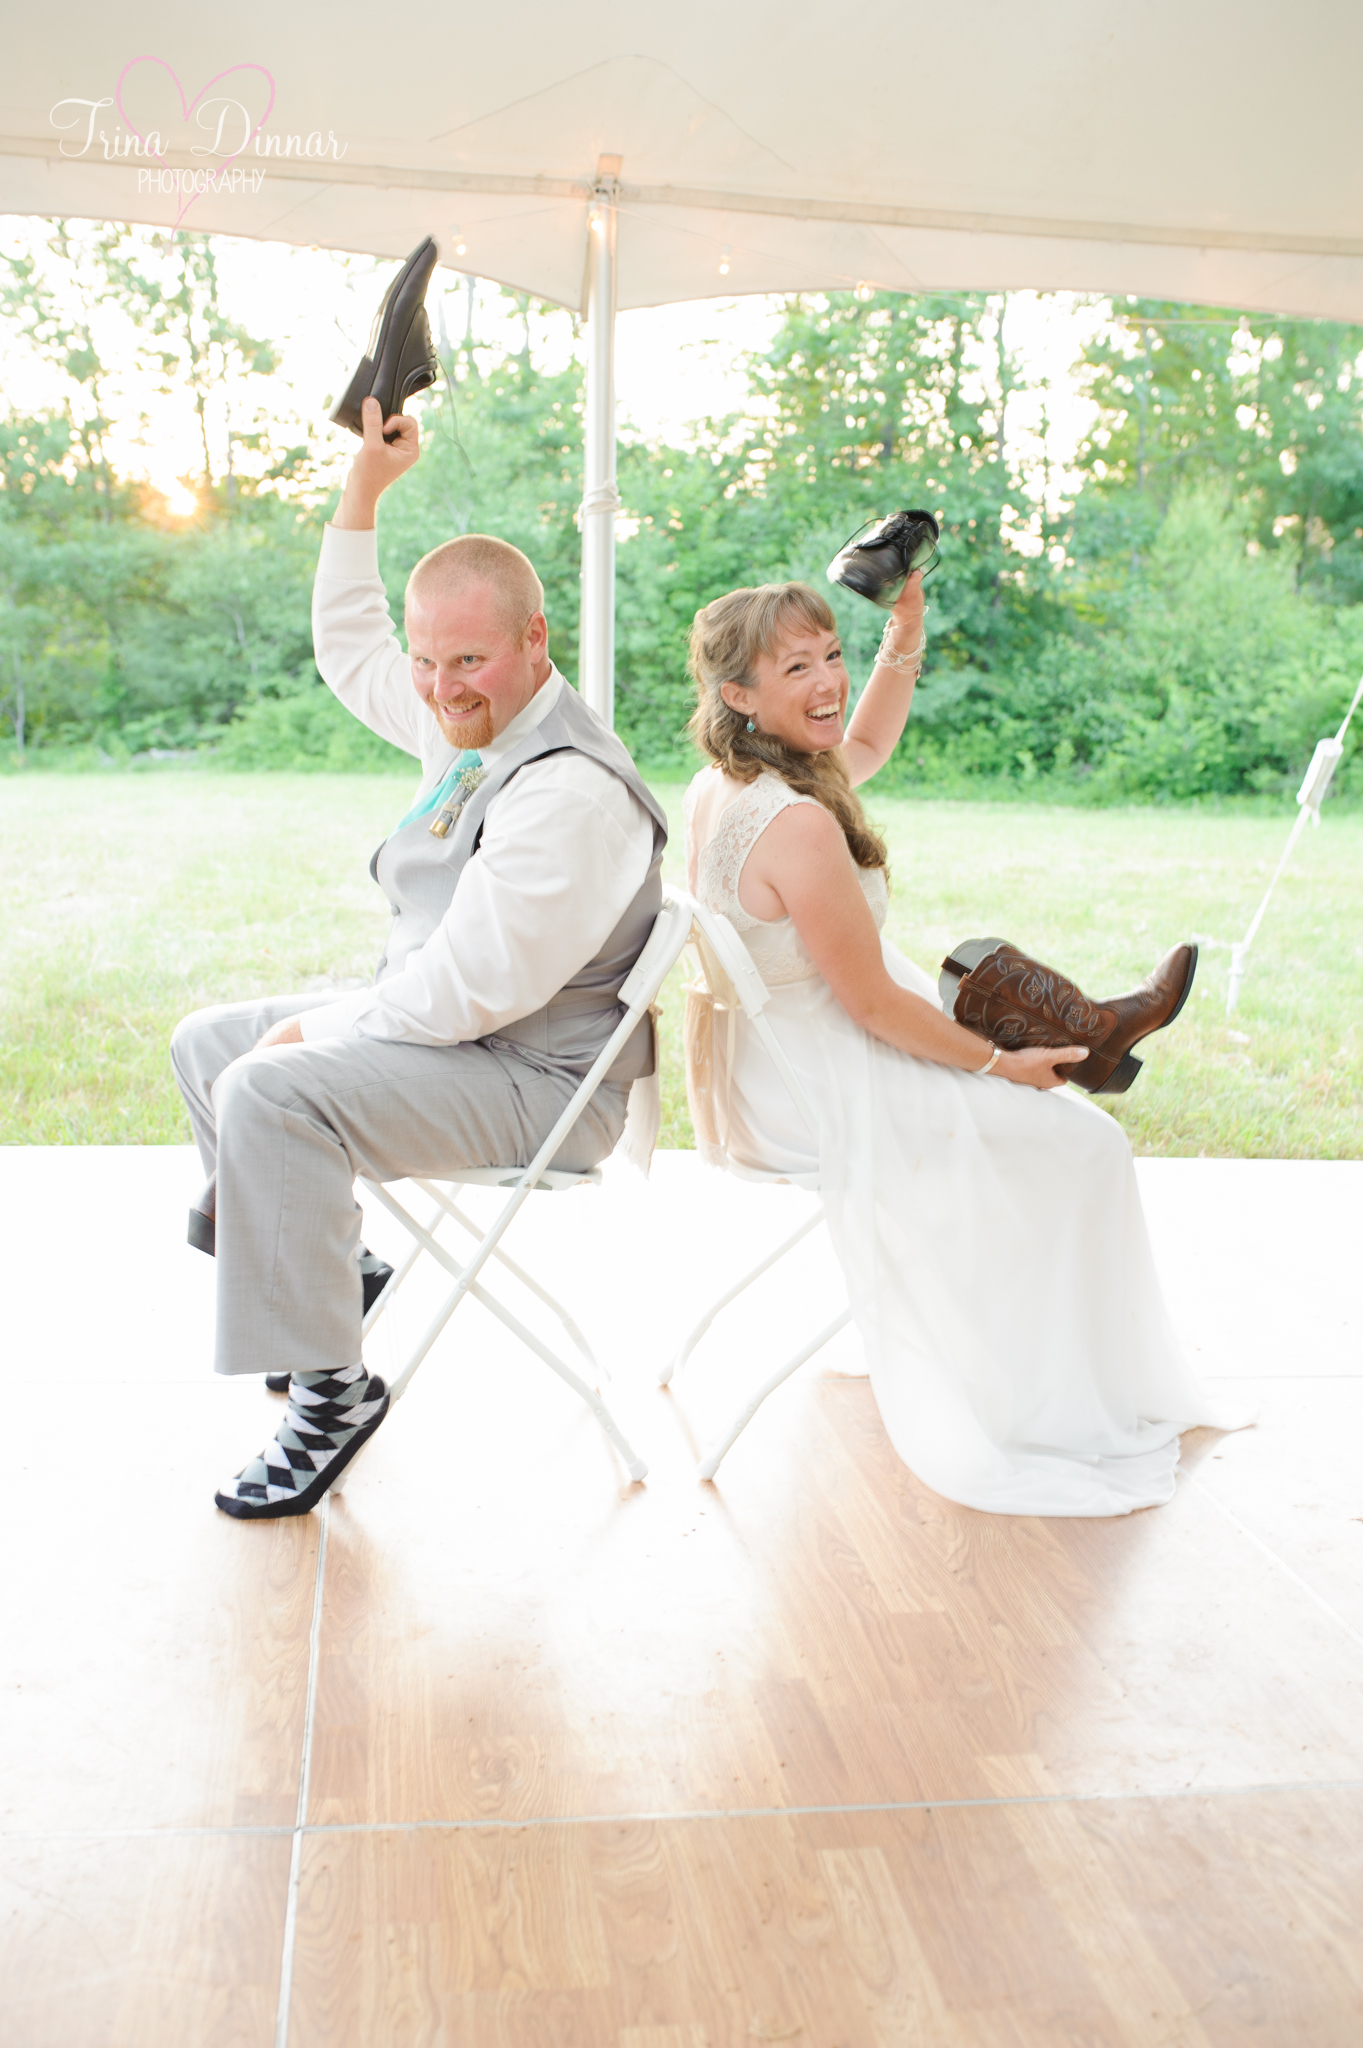 The Shoes Game - Fun Wedding Games